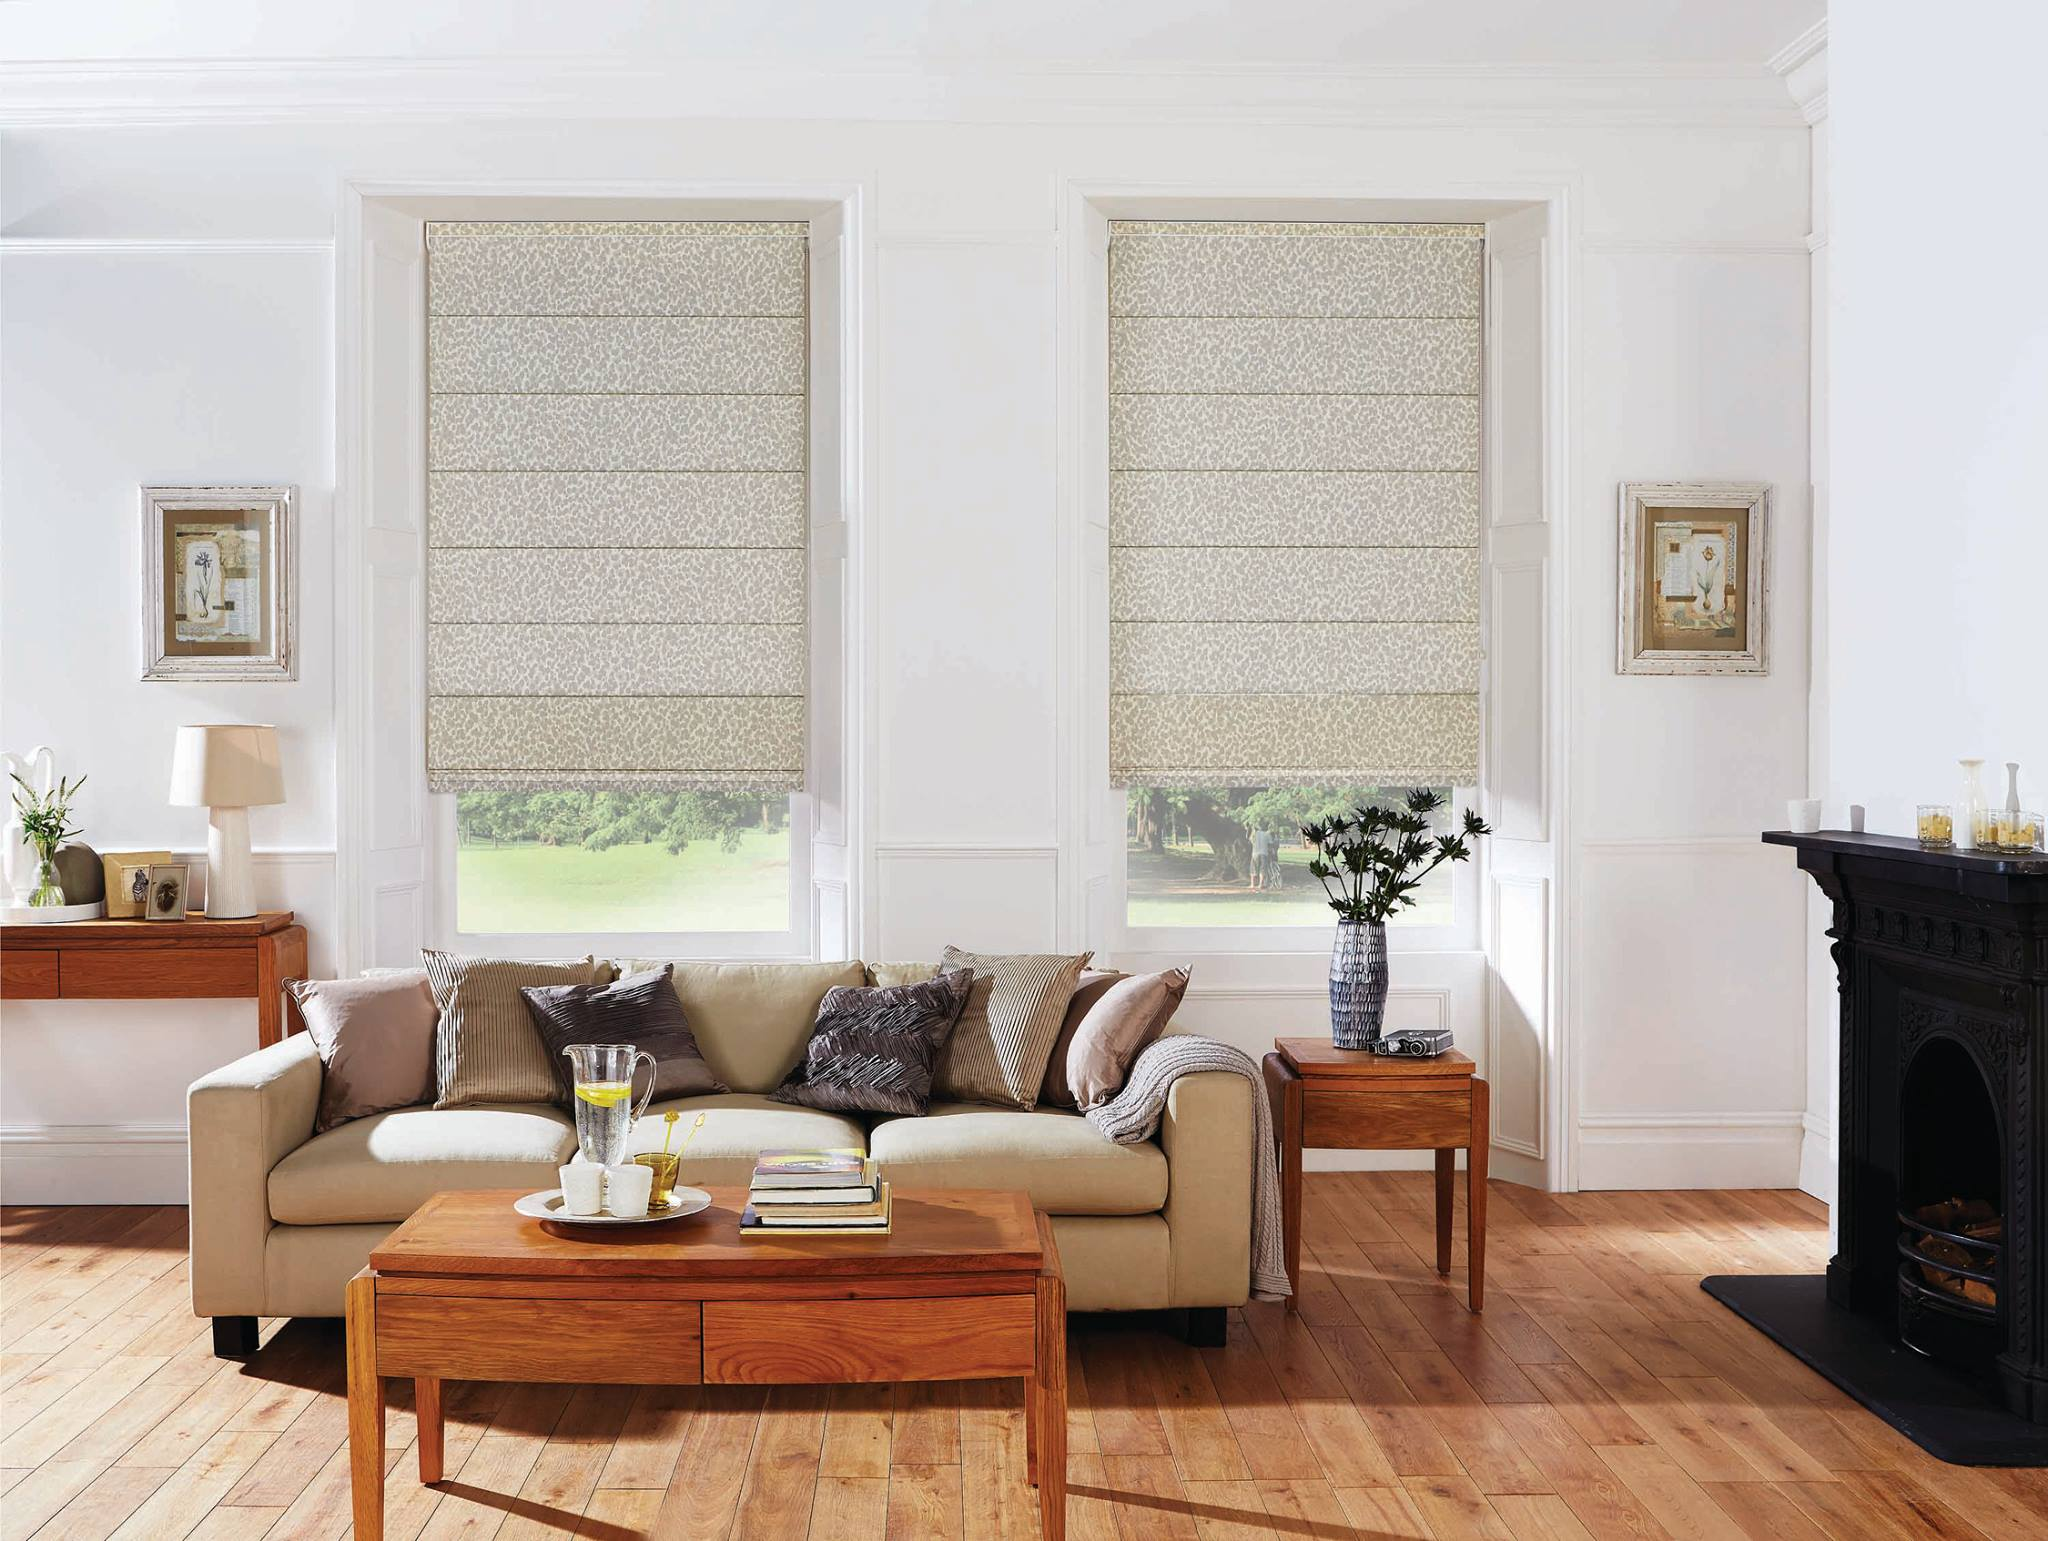 Diy Roman Blinds Online Australia Blinds City